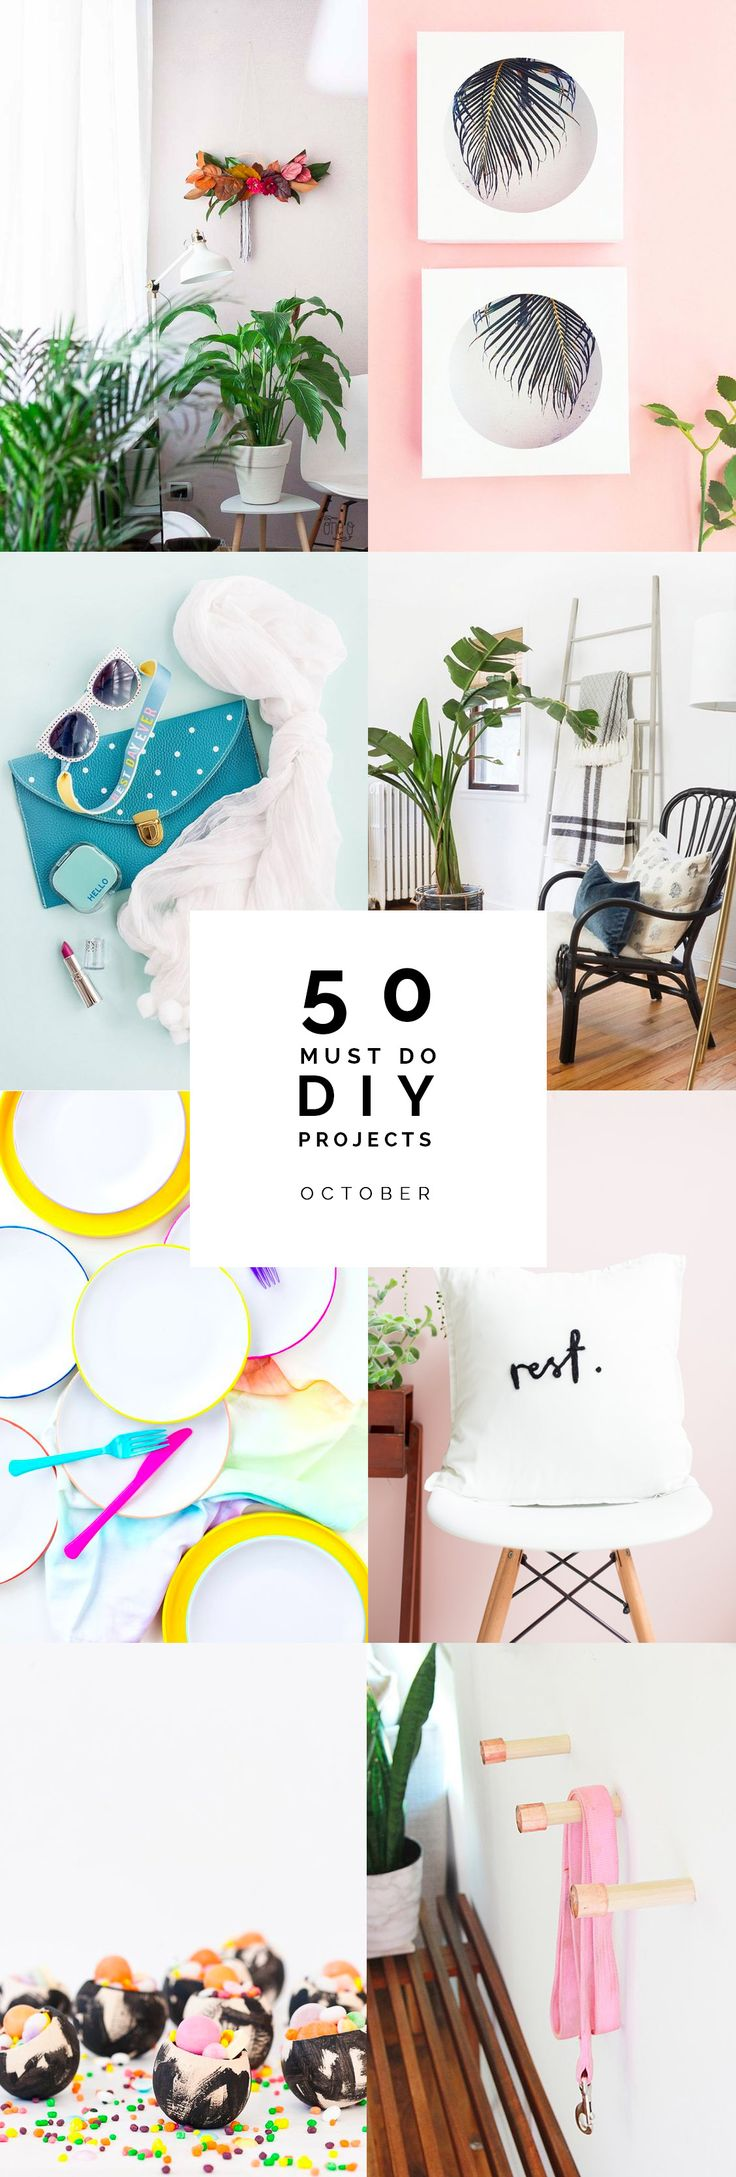 This was a particularly difficult month to put together. Mostly because we've been celebrating the build up to Halloween for the last month and now it's over I'm guessing you guys don't want to see a round up of 50 Halloween project ideas…. nope, thought not (I have no idea what we're going to do …